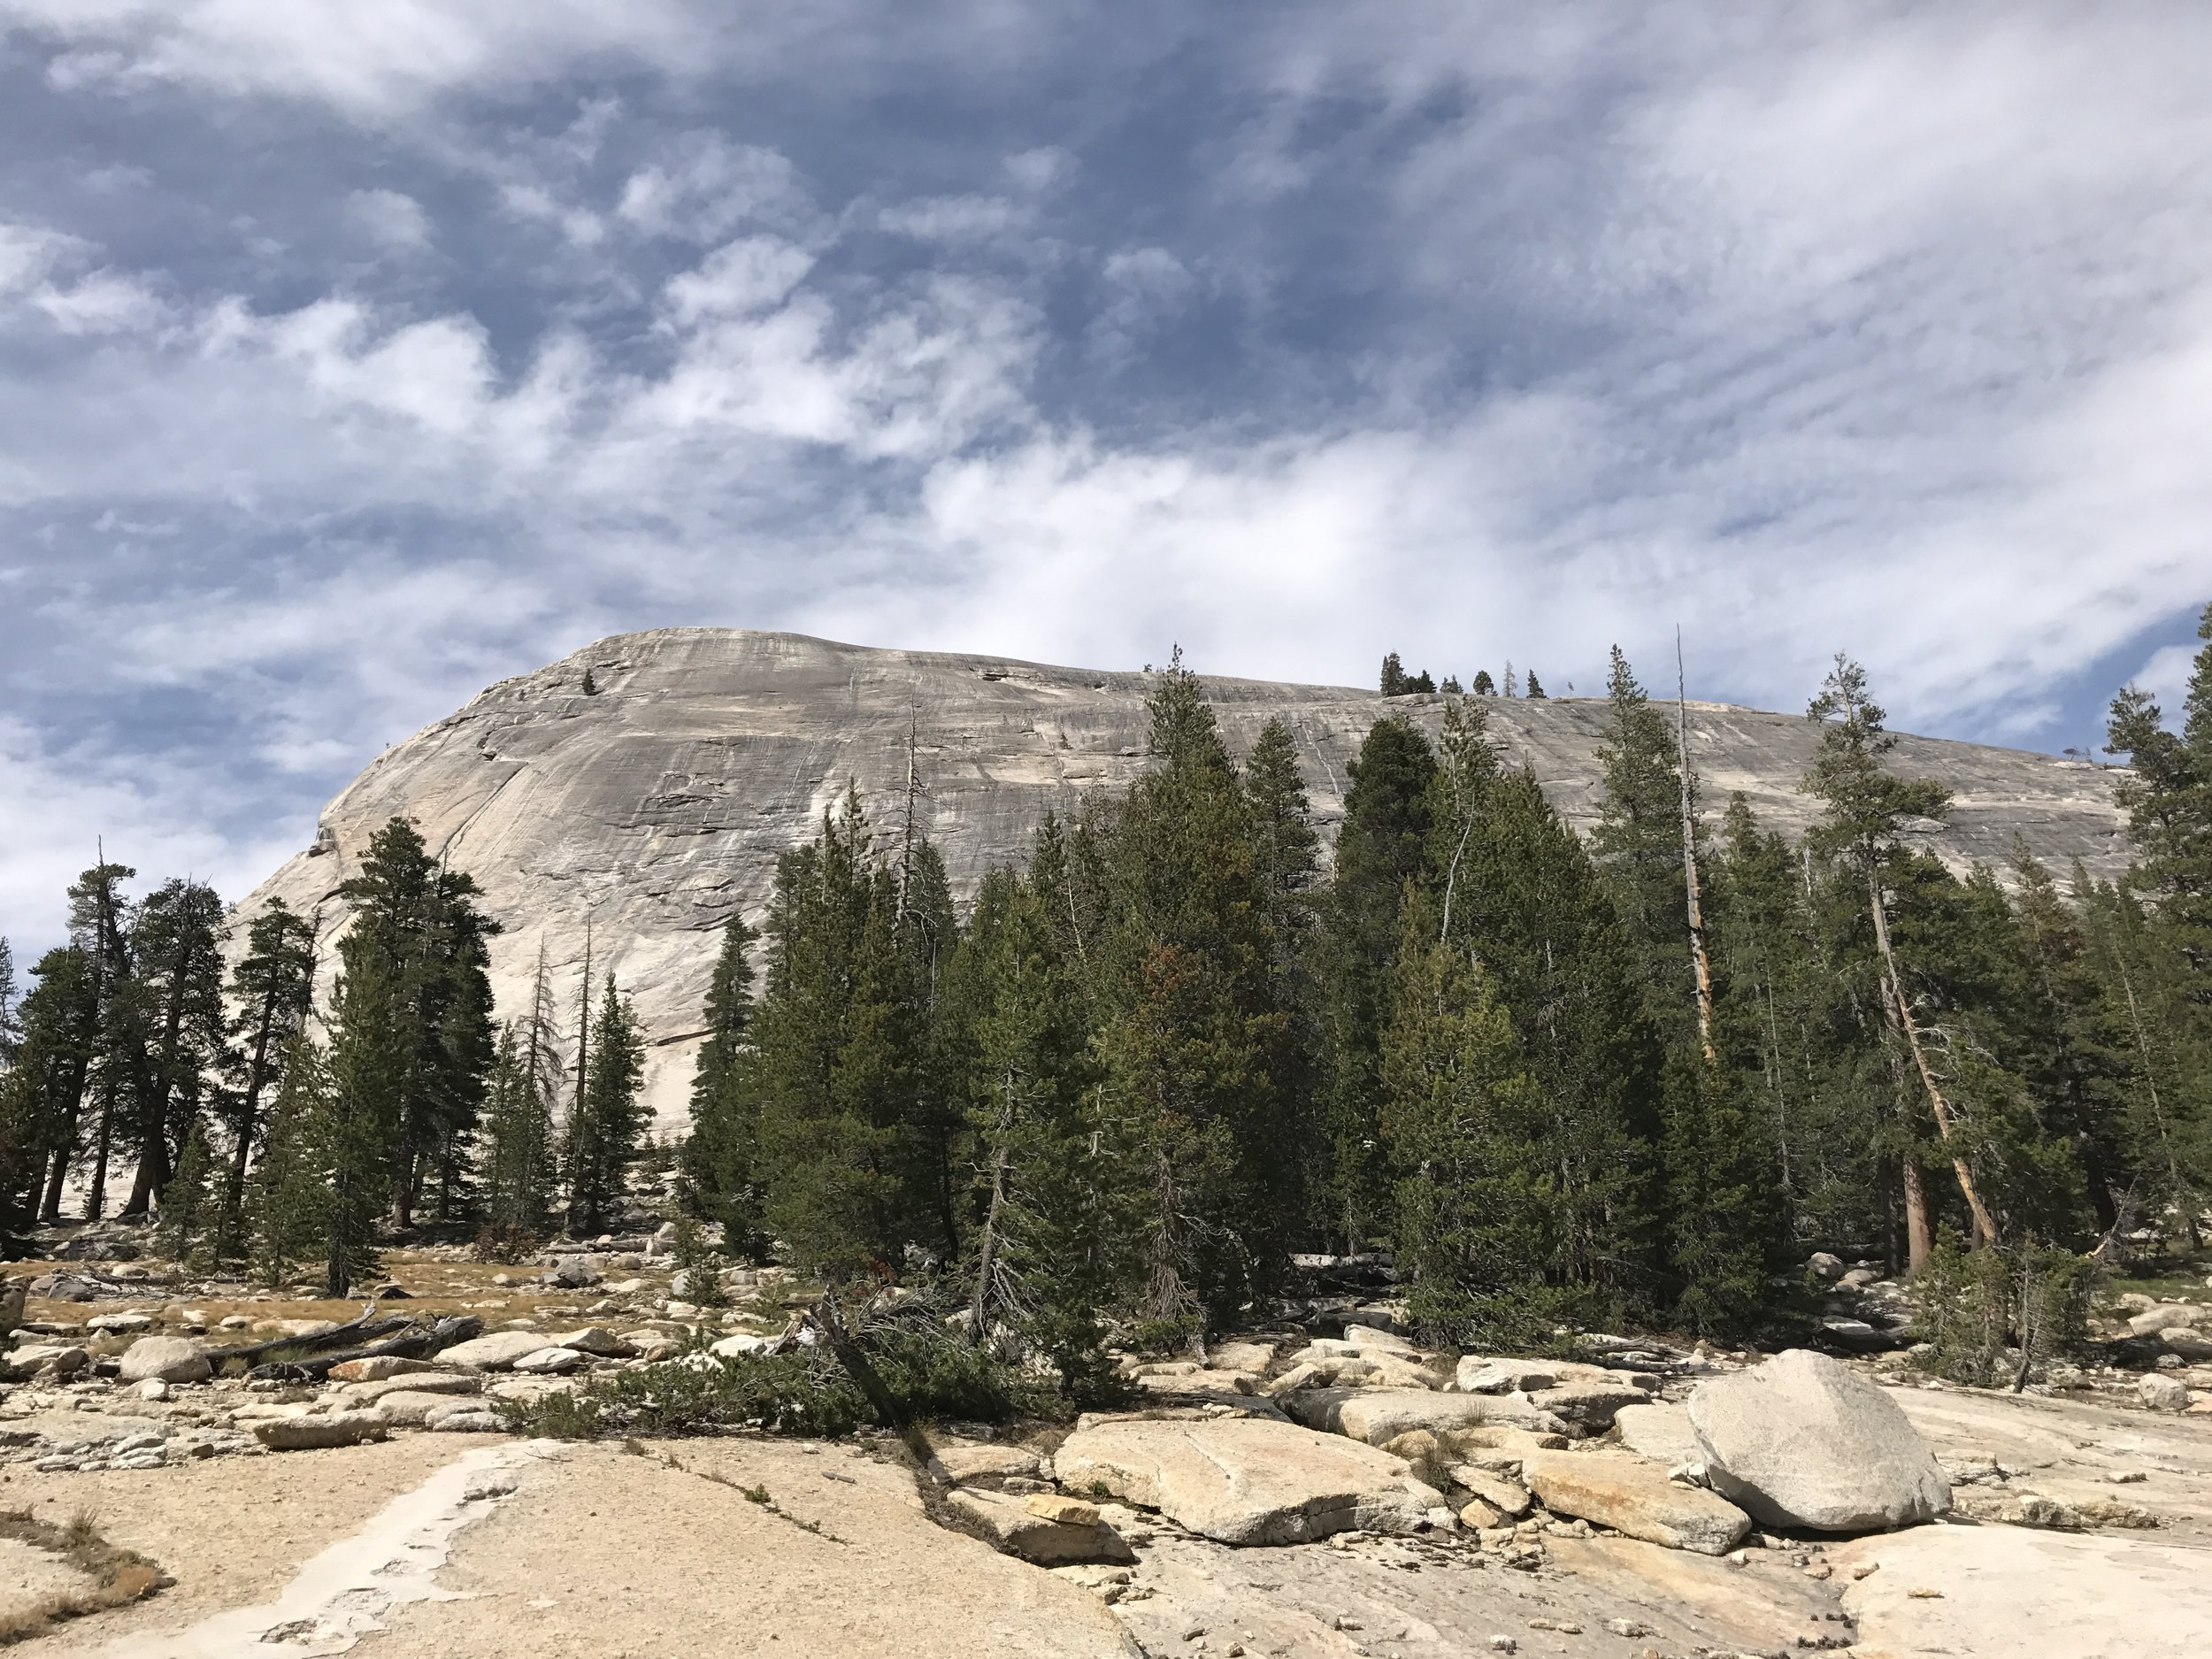 At 9,455 feet tall, Lembert Dome is also a fairly respectable sized peak for novice climbers on the eastern side of Yosemite.